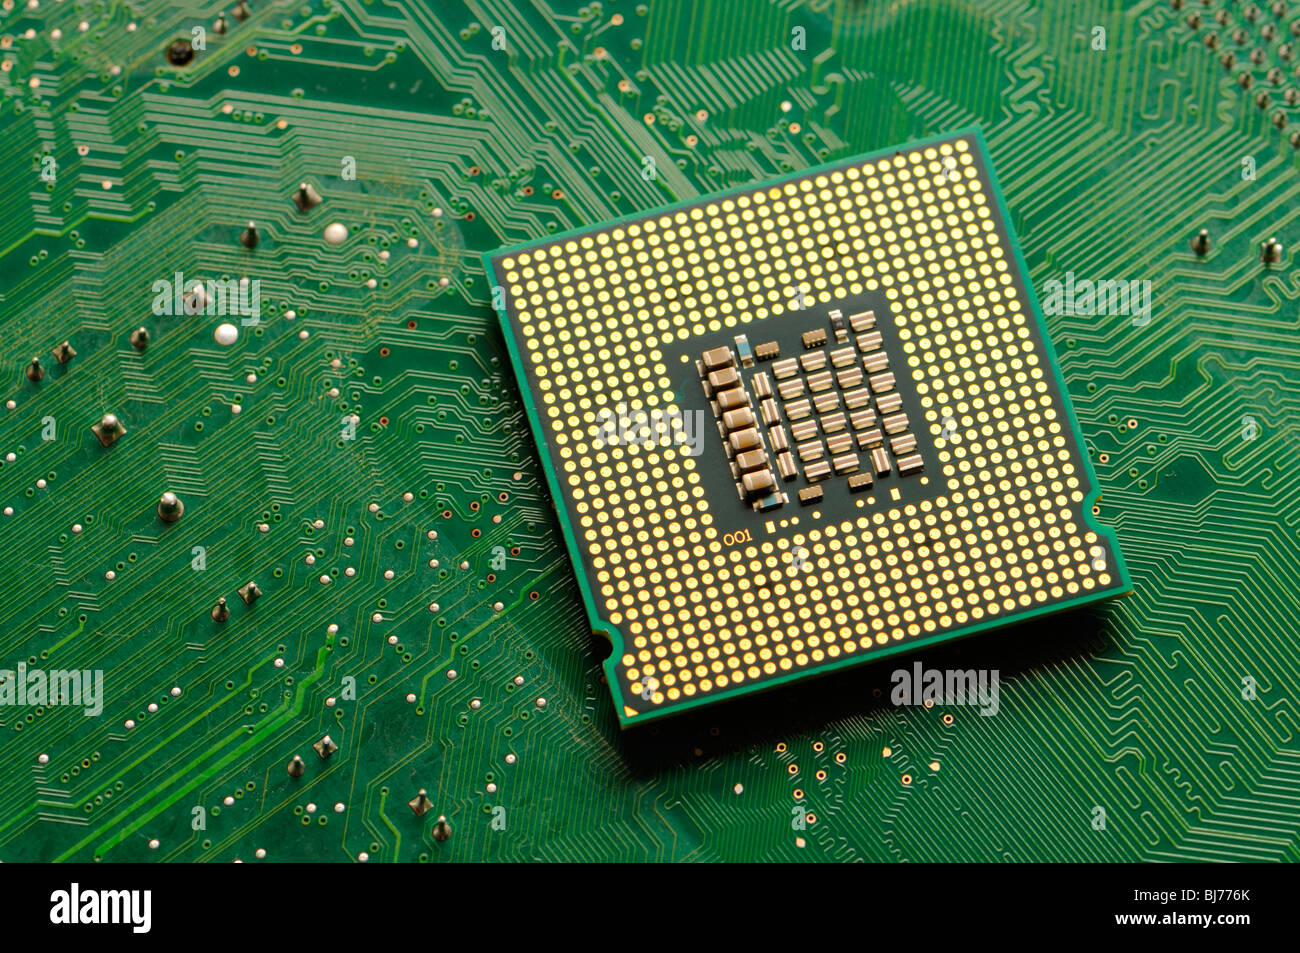 Computer processor on circuit board - Stock Image